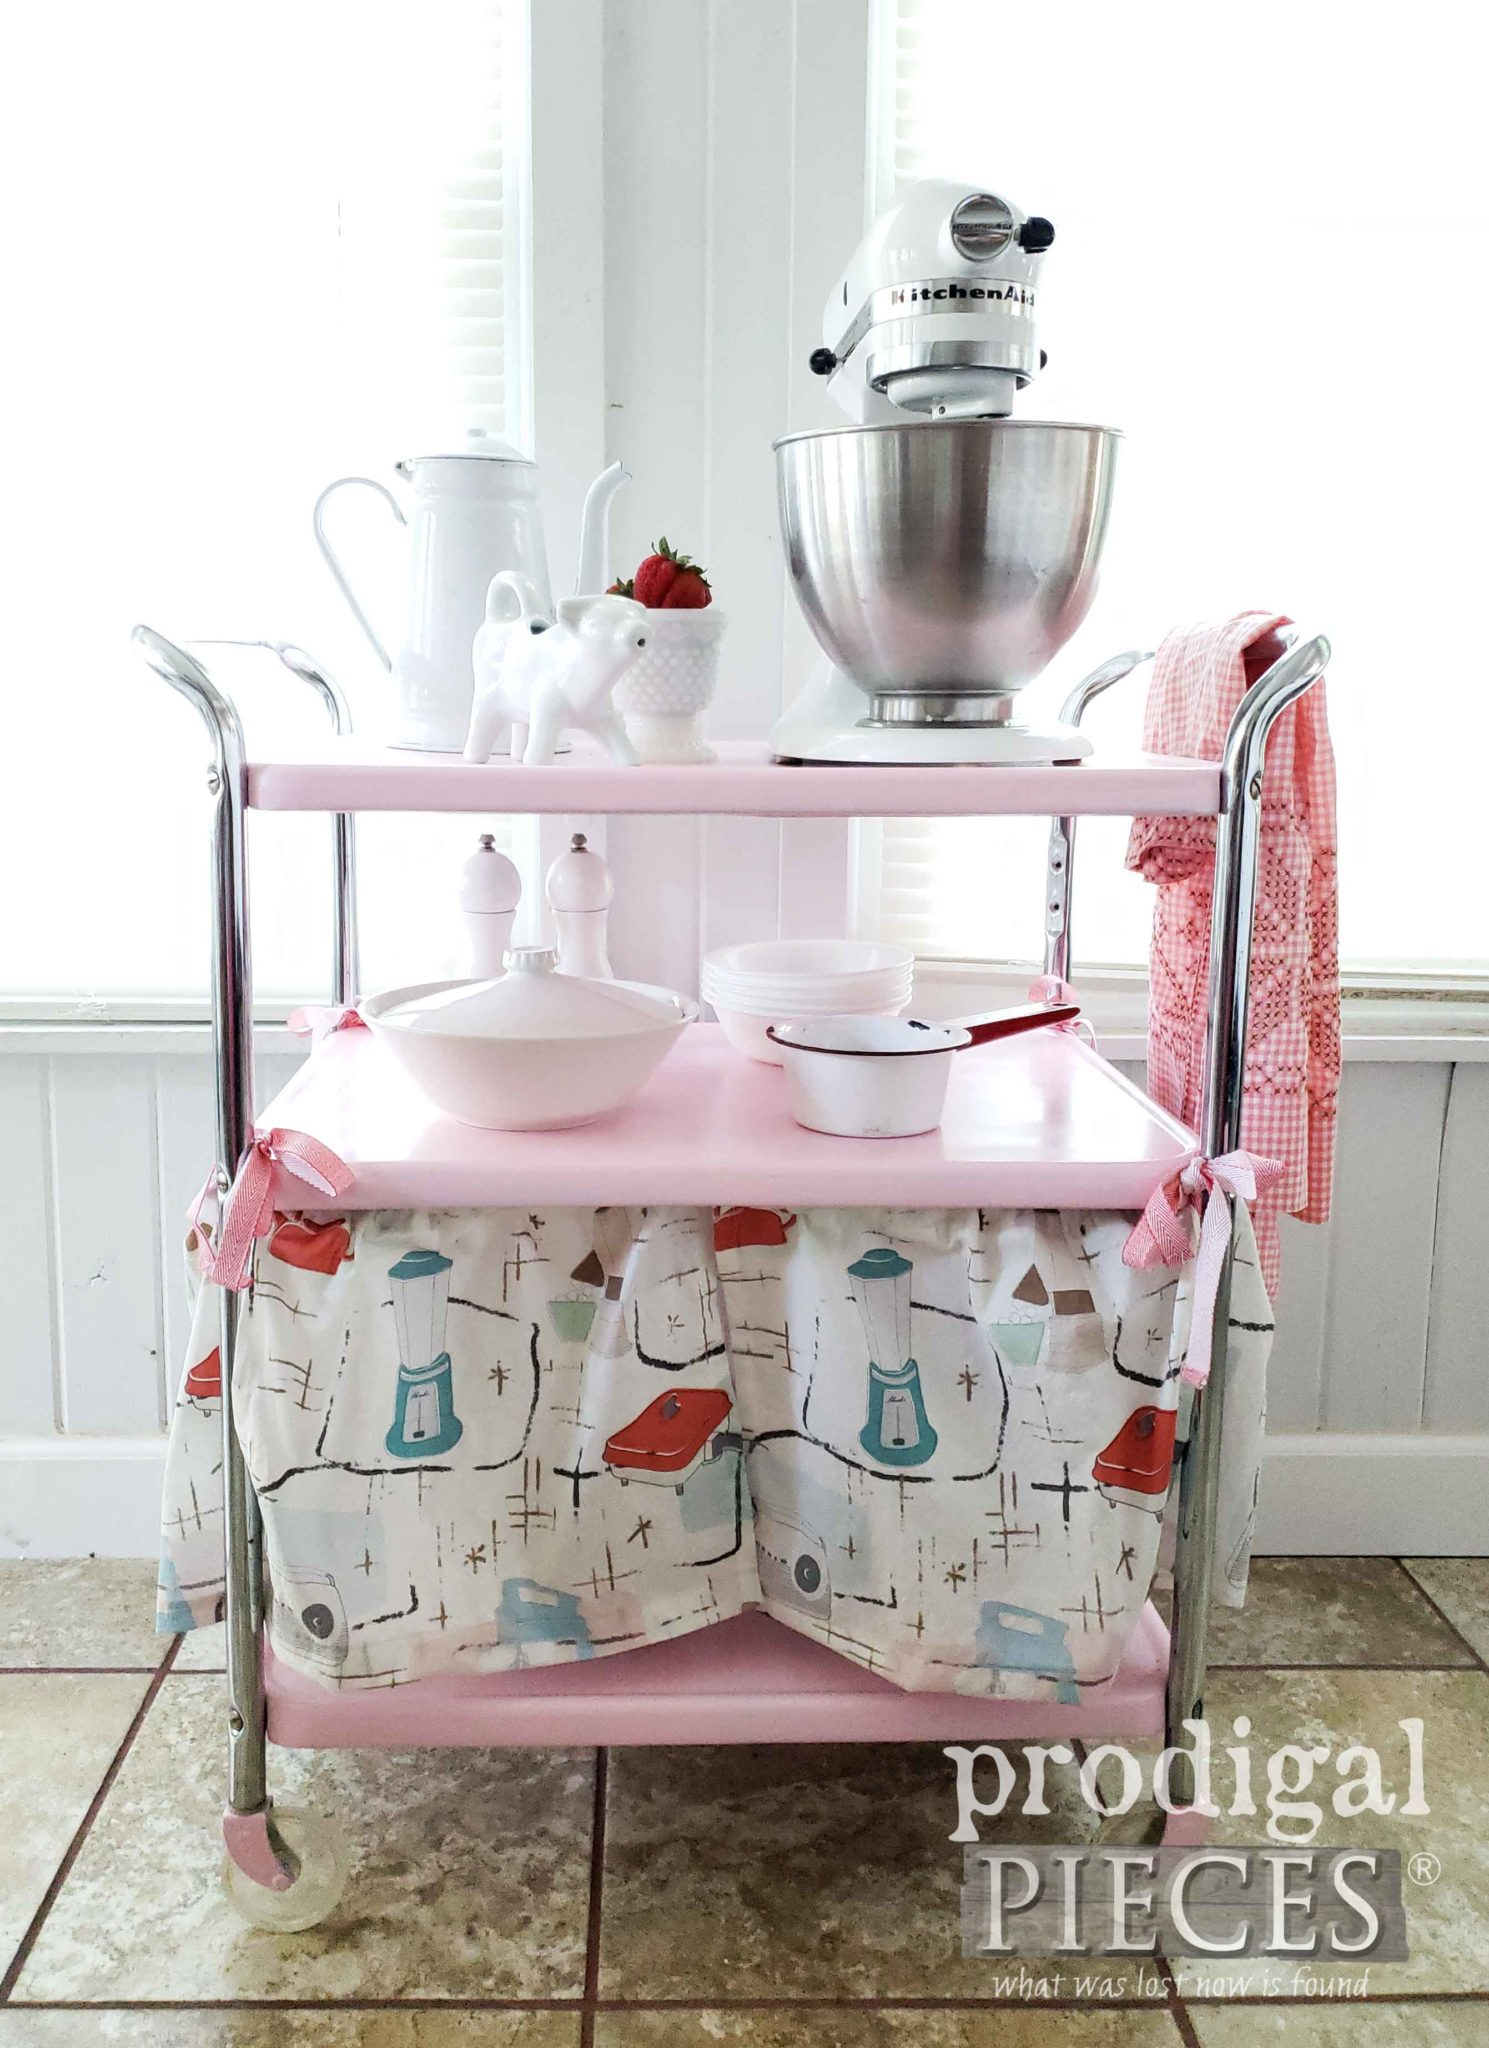 Vintage Pink Cosco Cart with Dust Ruffle Skirt by Larissa of Prodigal Pieces | prodigalpieces.com #prodigalpieces #diy #home #homedecor #furniture #vintage